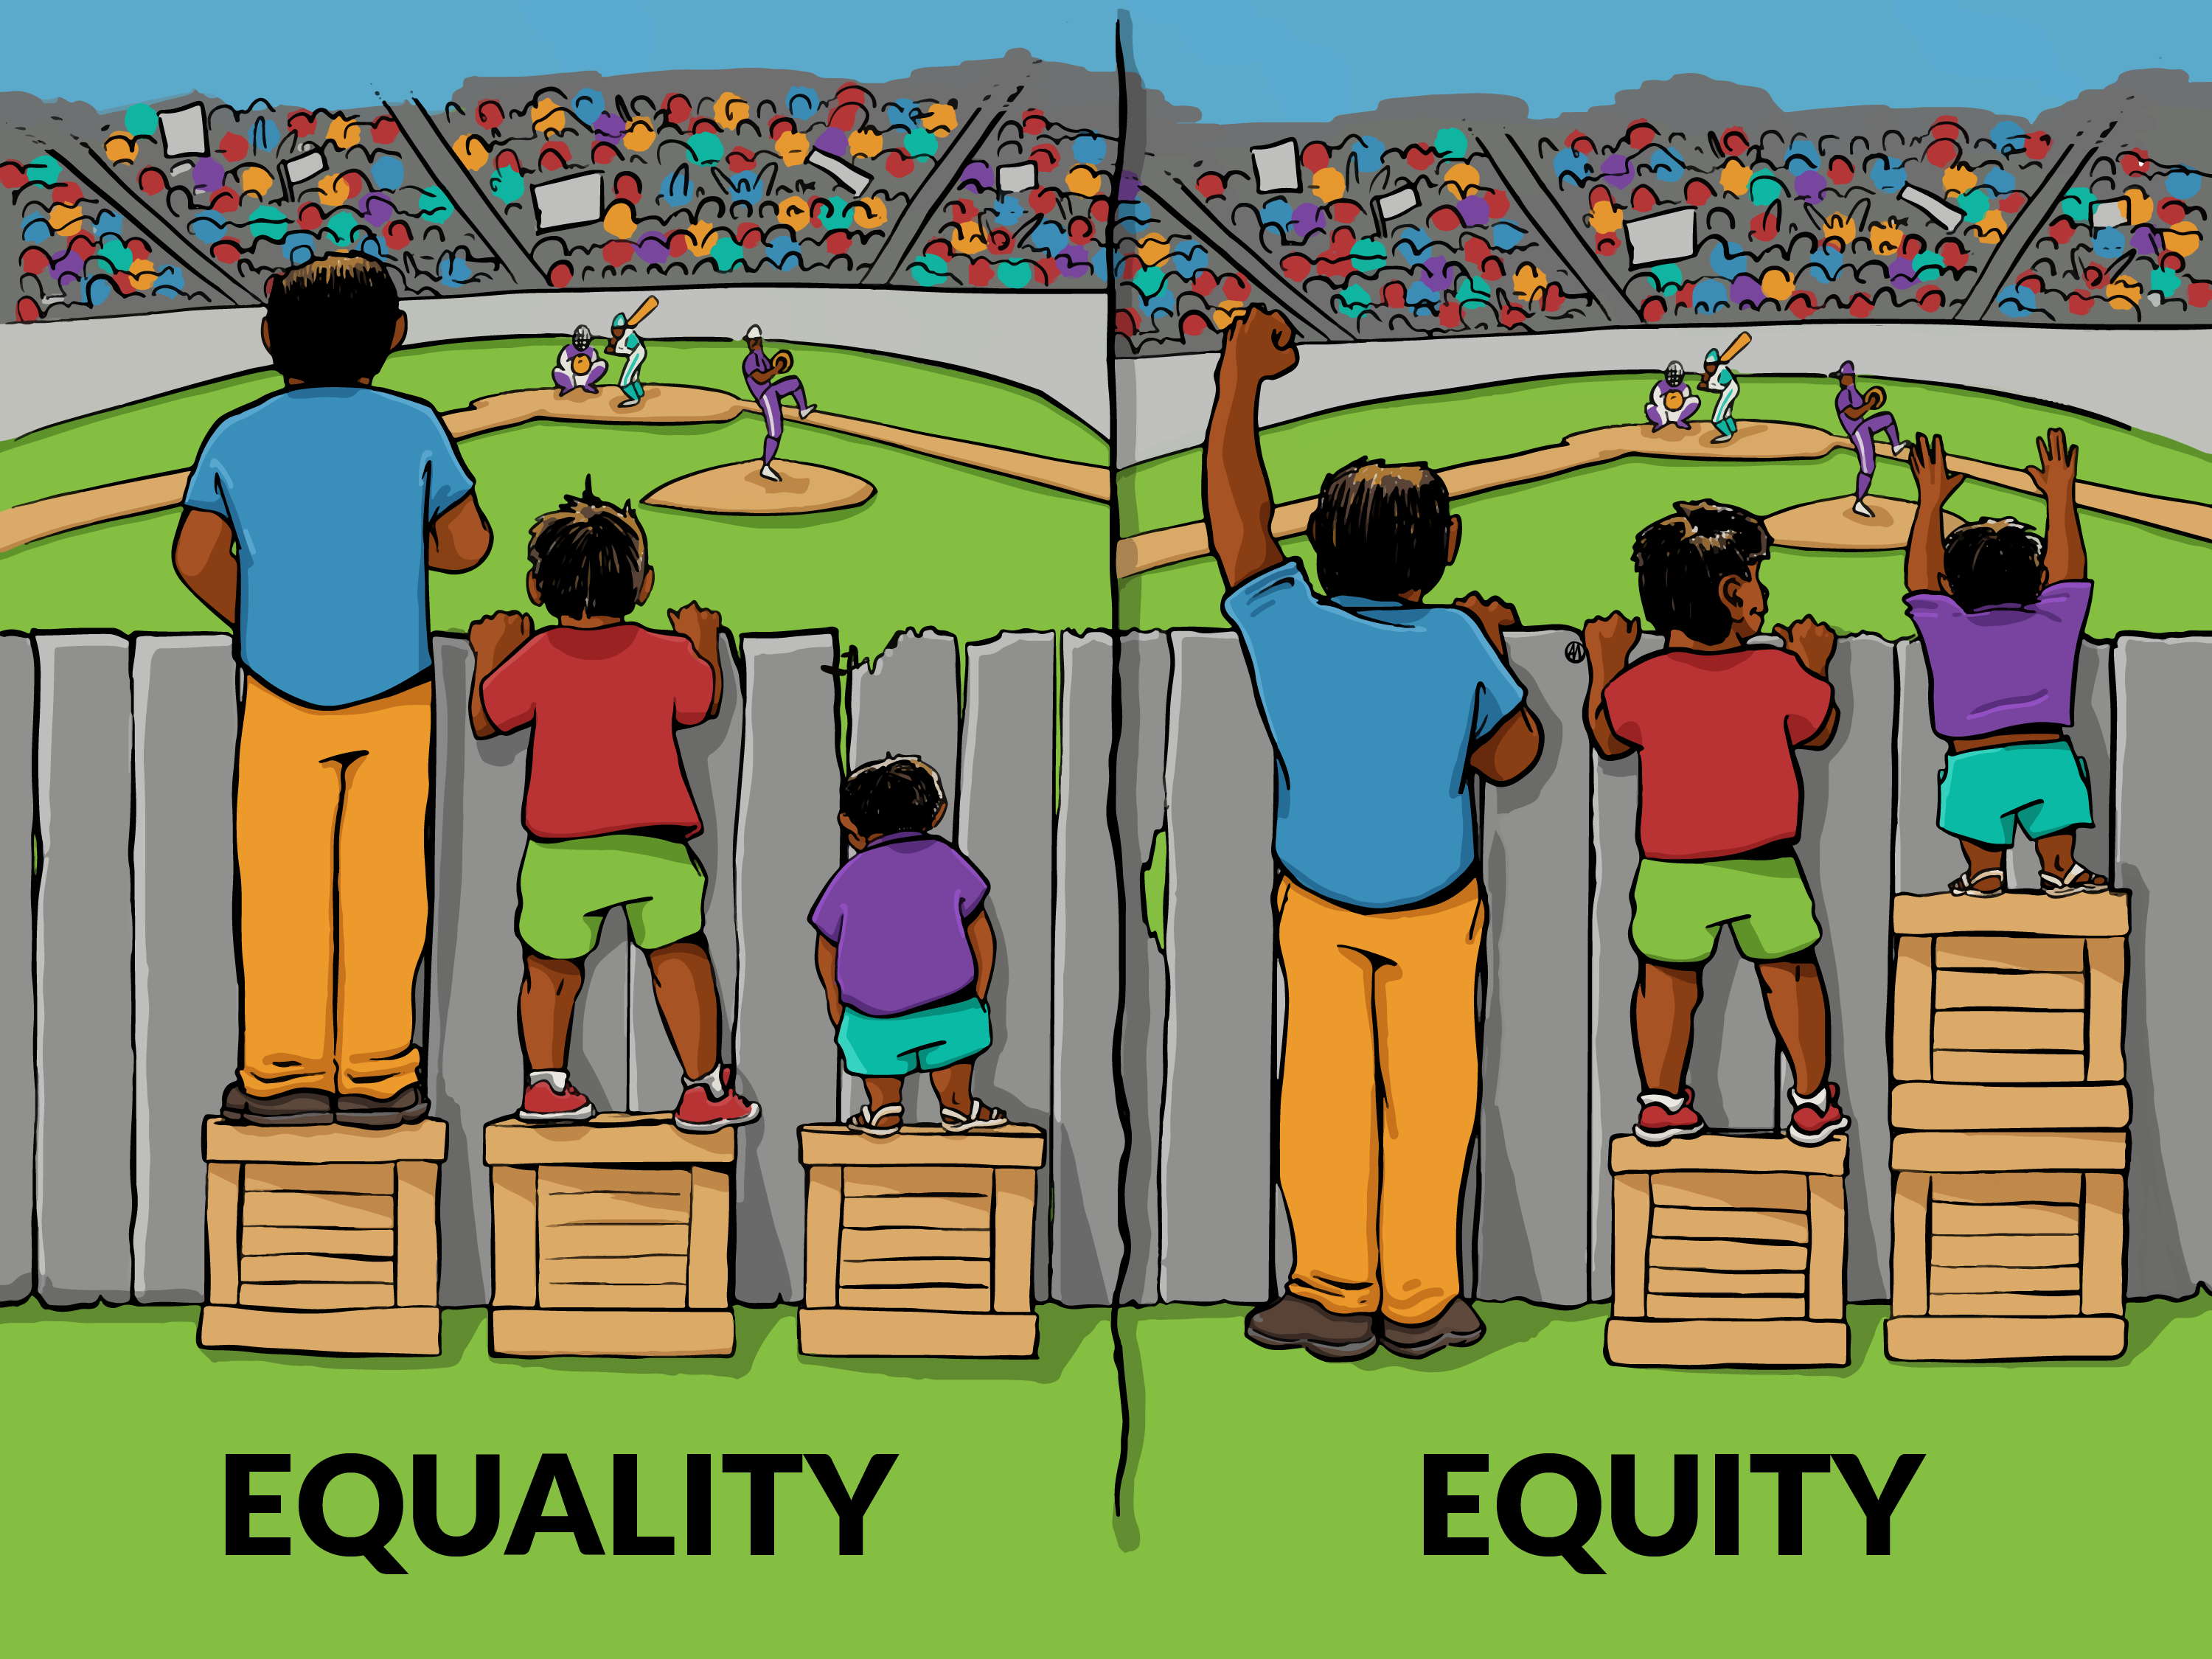 equity_vs_equality.png